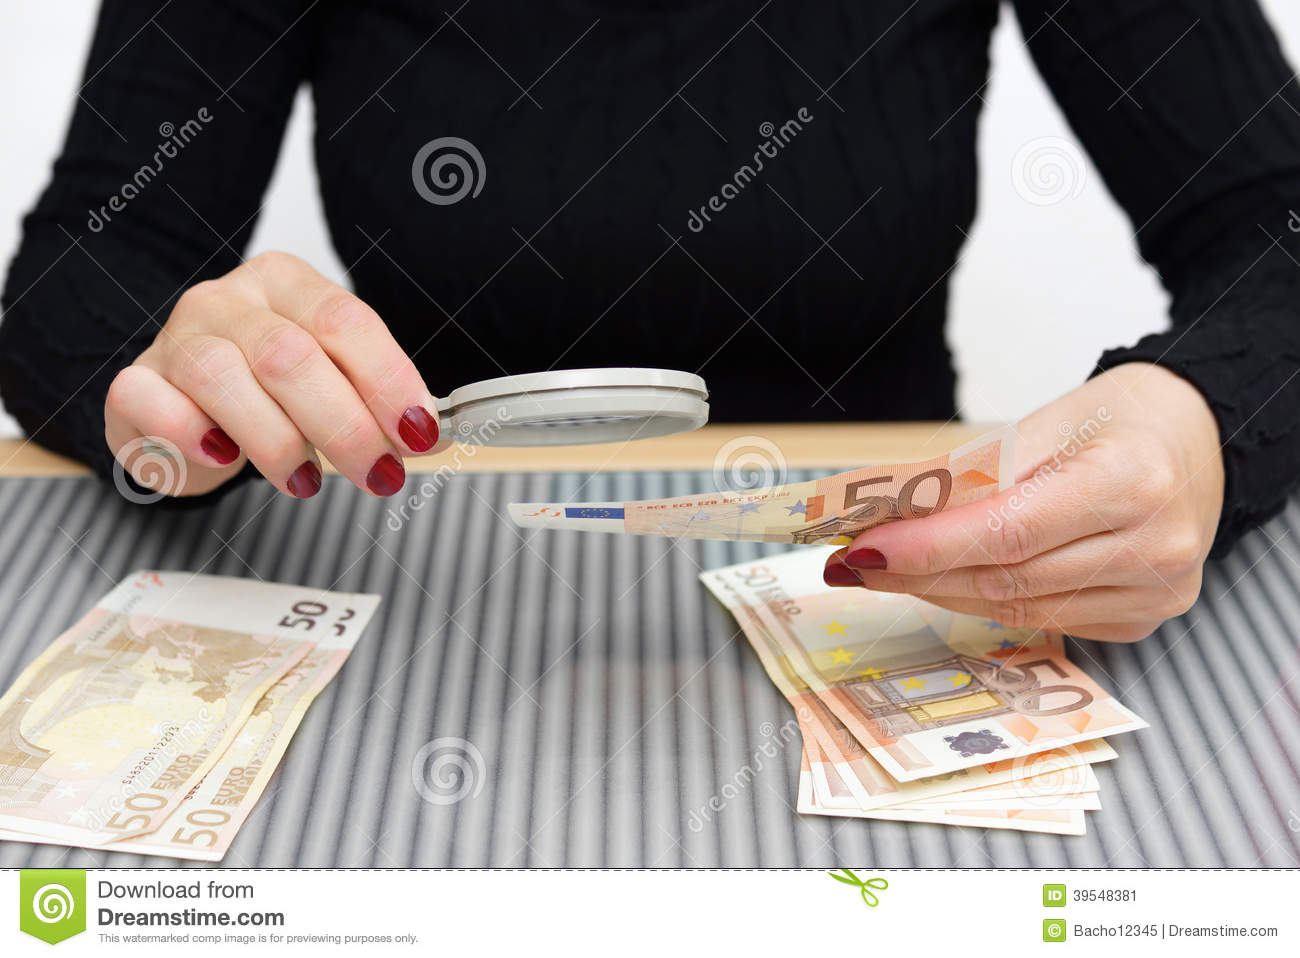 Woman is looking through a magnifying glass for counterfeit